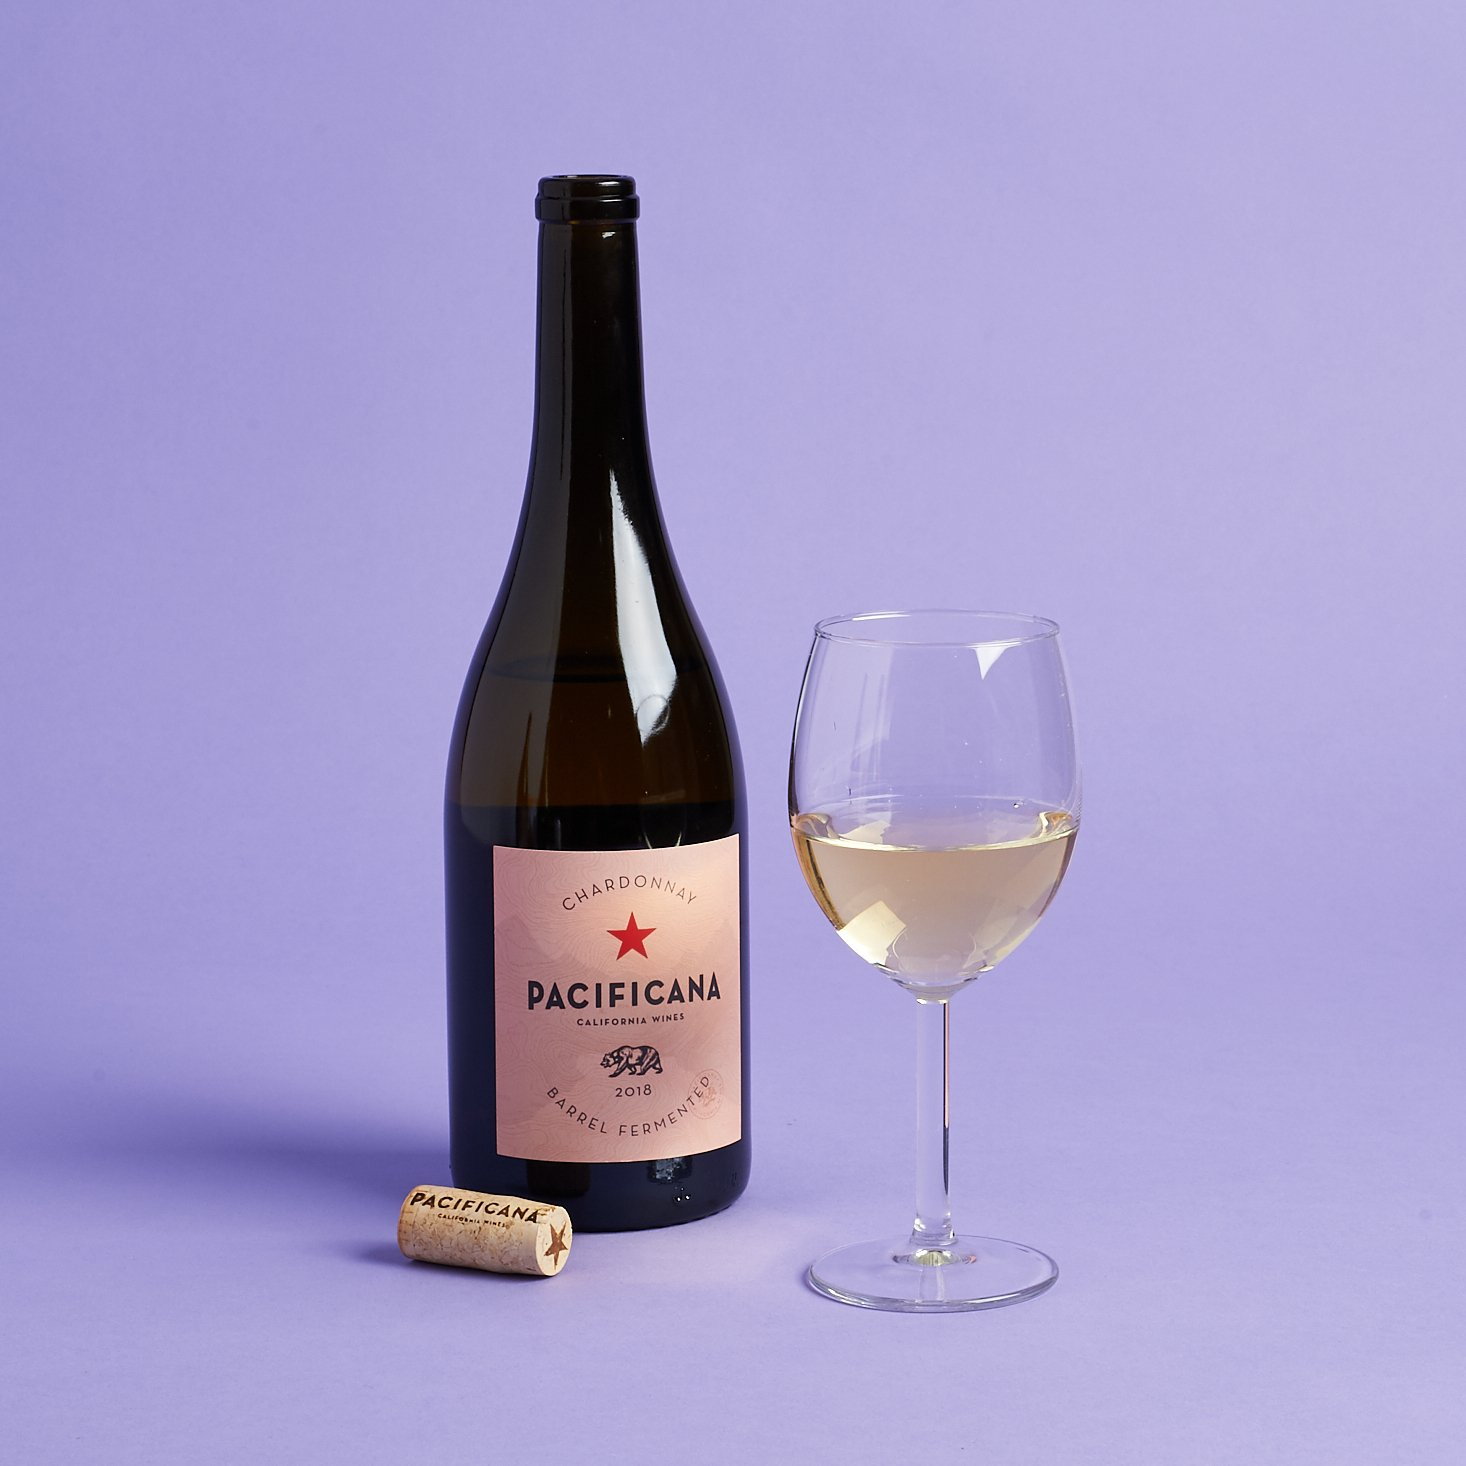 pacificana chardonnay full bottle and glass